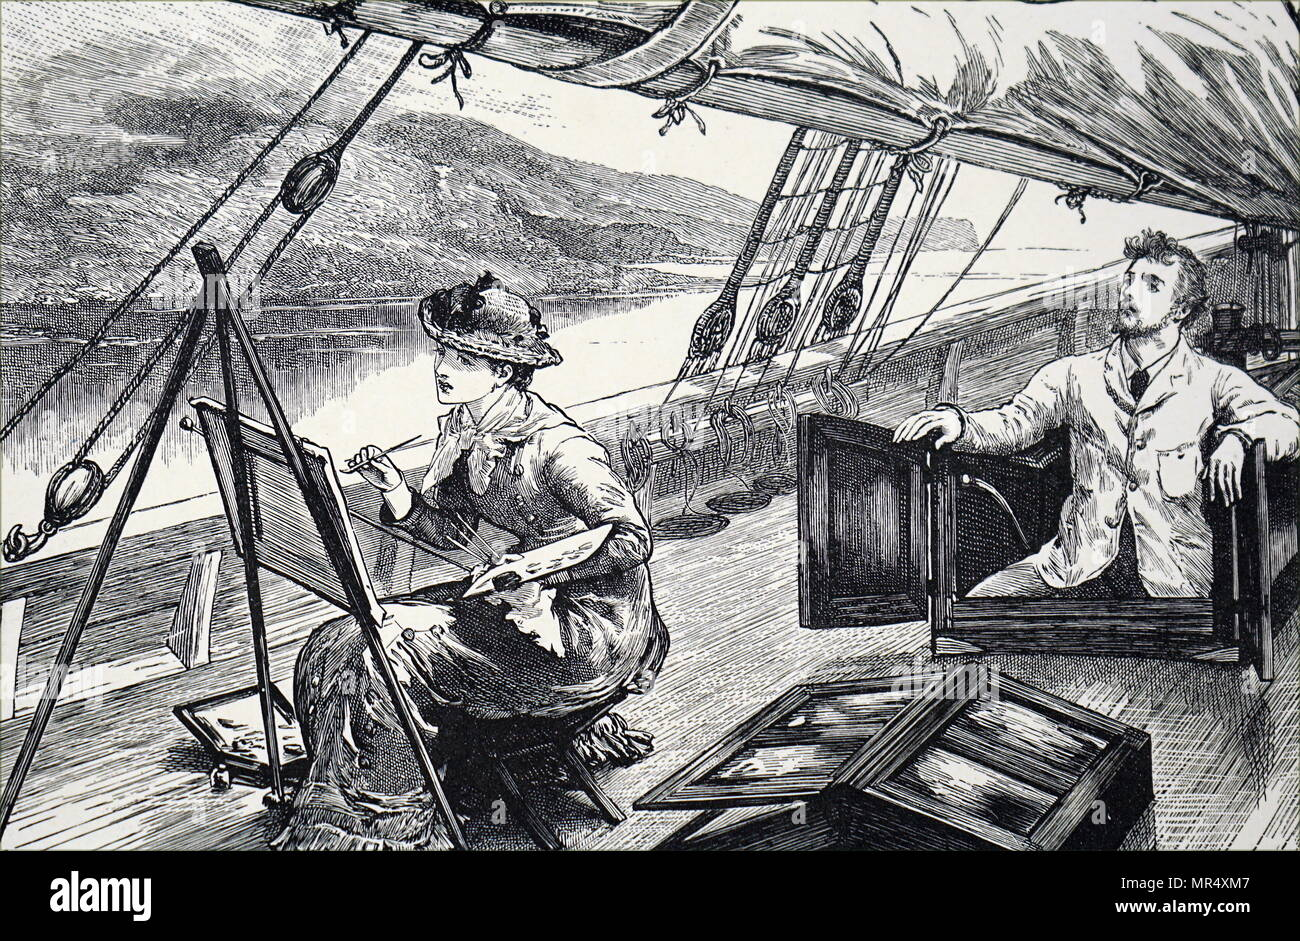 Illustration depicting a young woman painting on the deck of a boat as it sails down a river. Dated 19th century - Stock Image